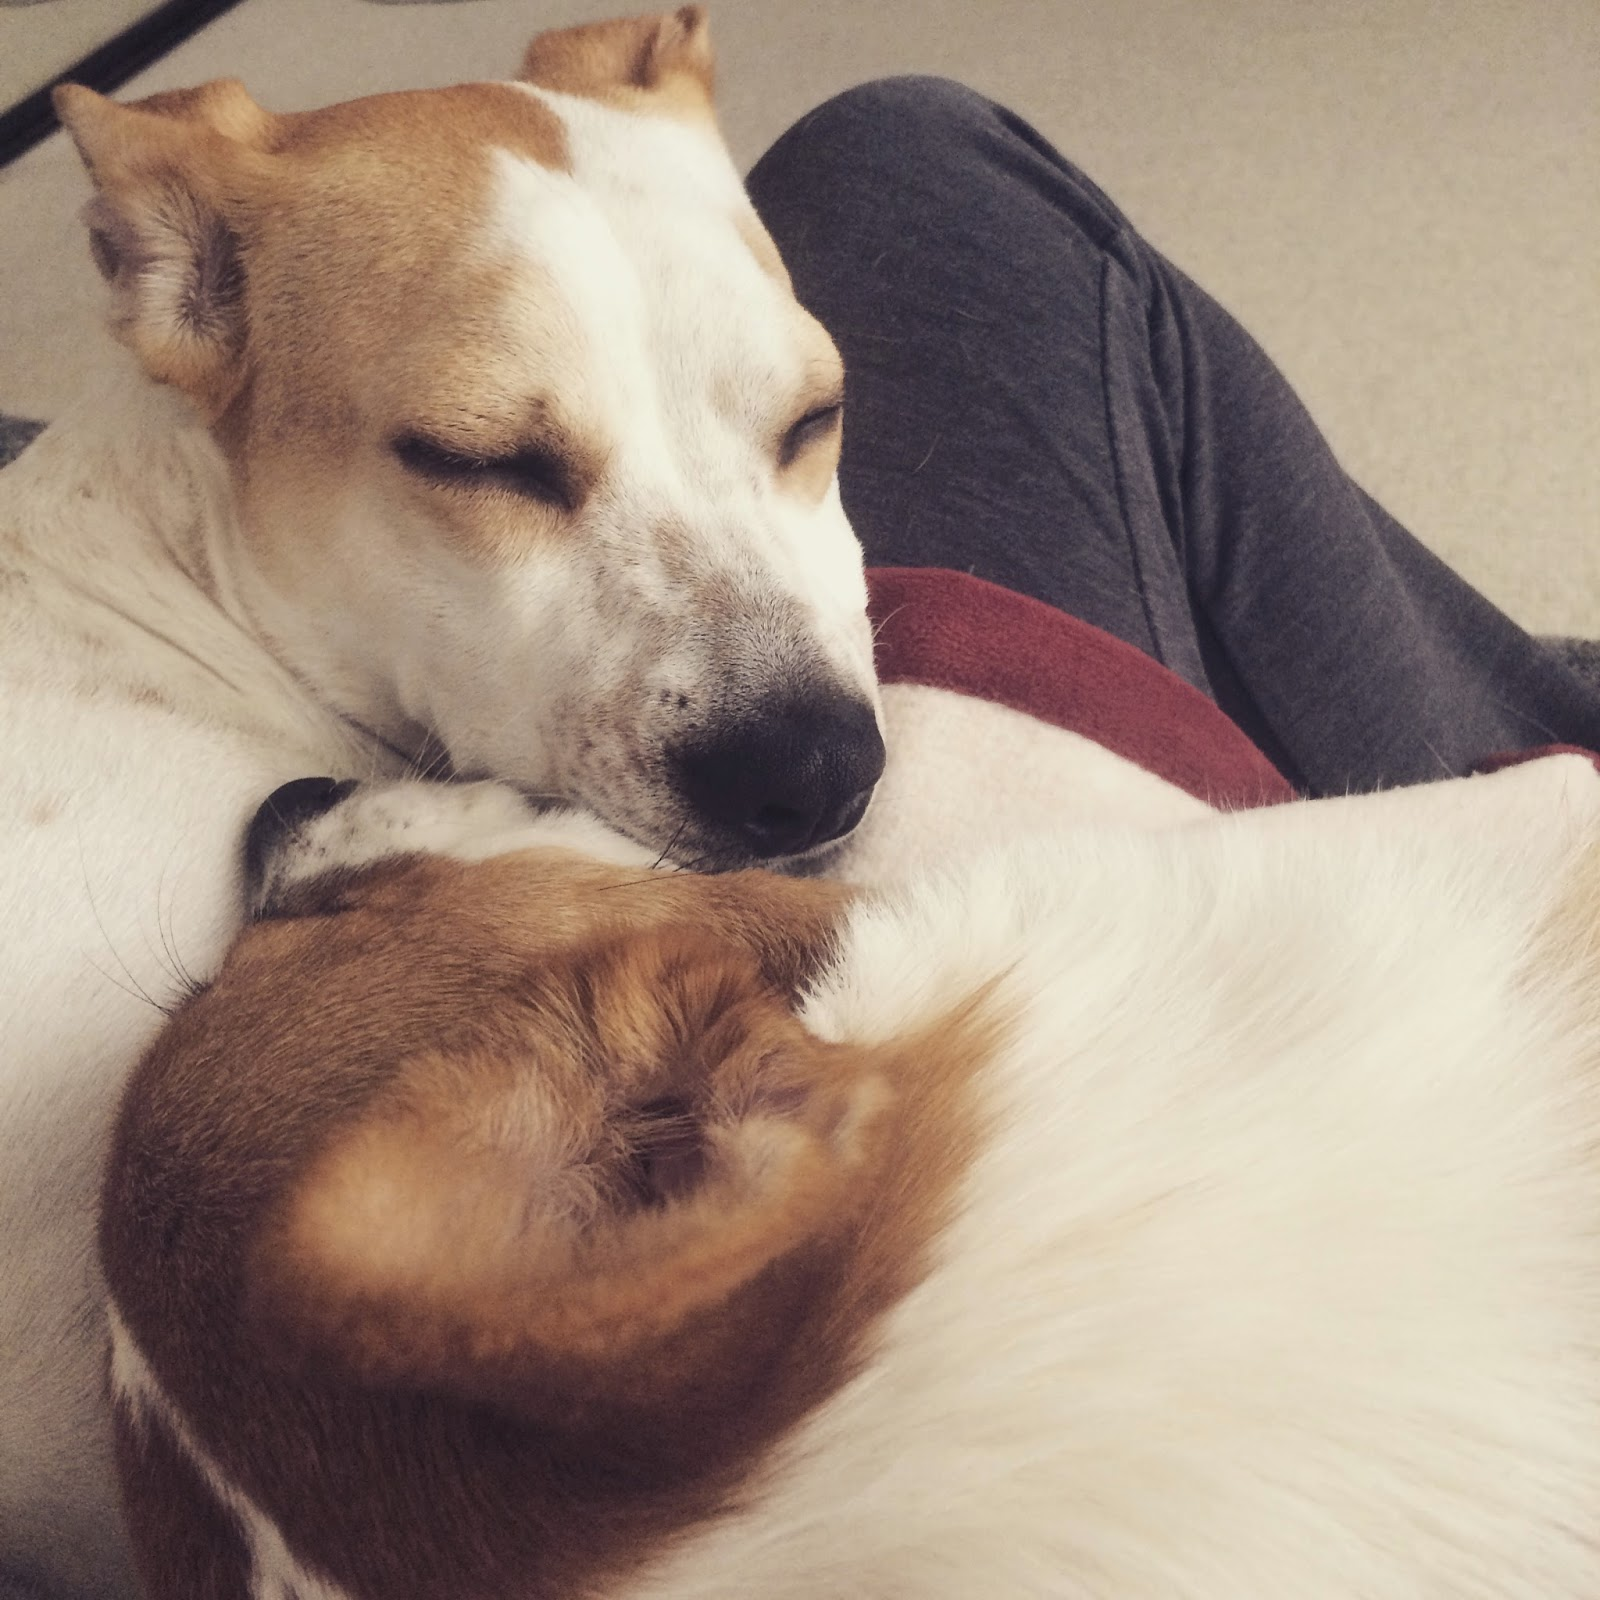 a picture of dogs sleeping together